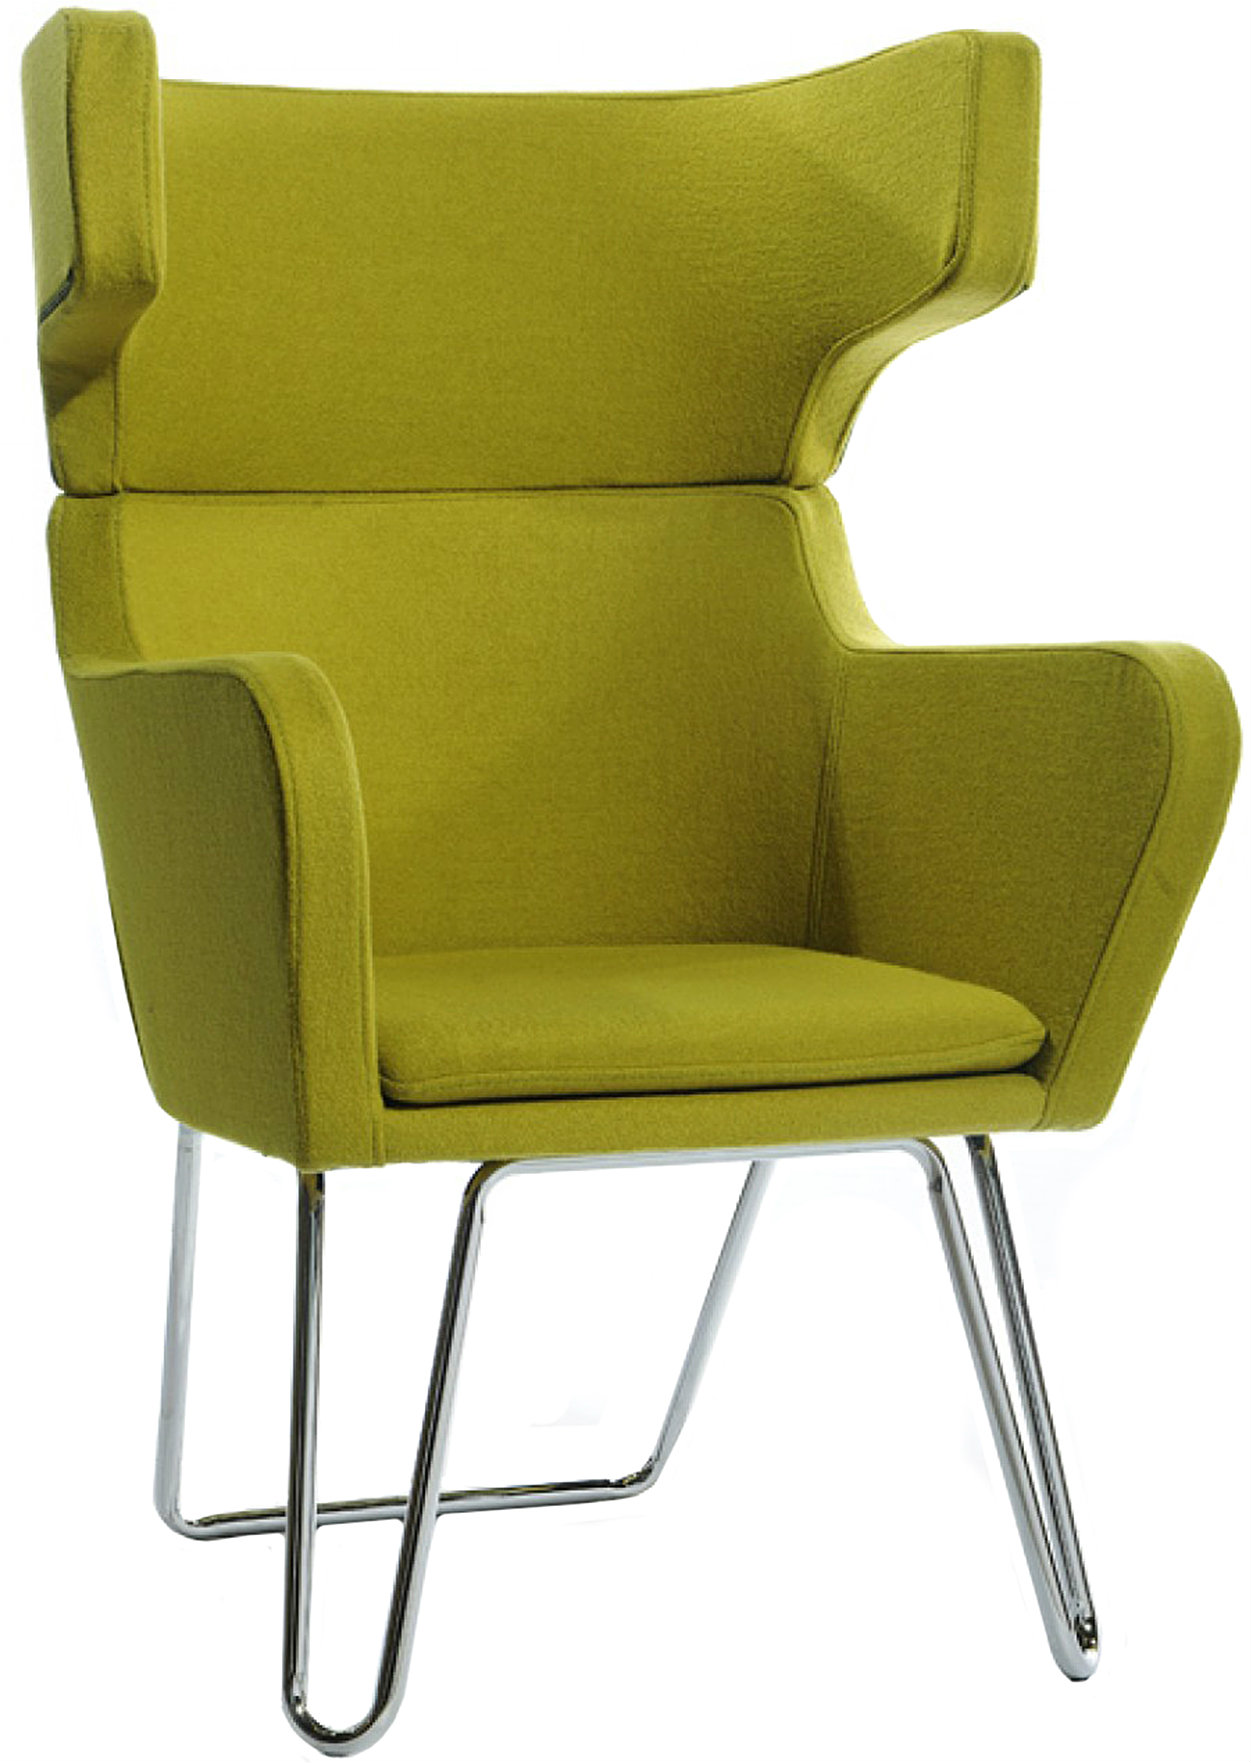 Brand new green living room chair called the Alan available at AdvancedInteriorDesigns.com